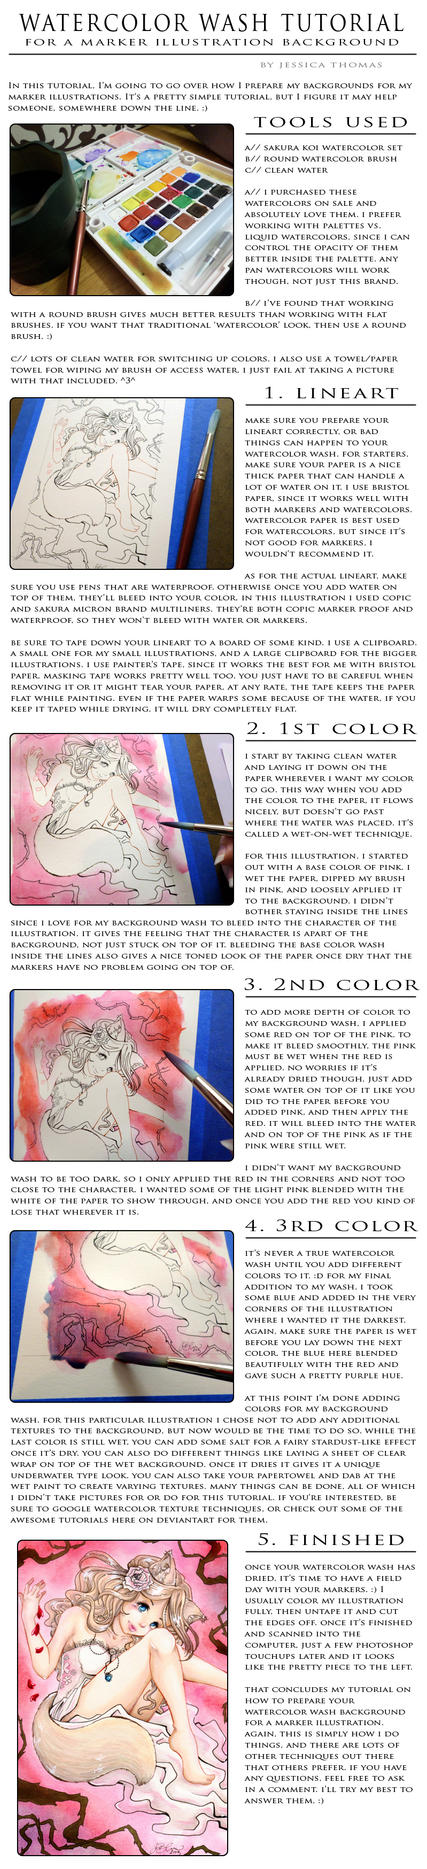 Watercolor Wash Background Tutorial by Gezusfreek